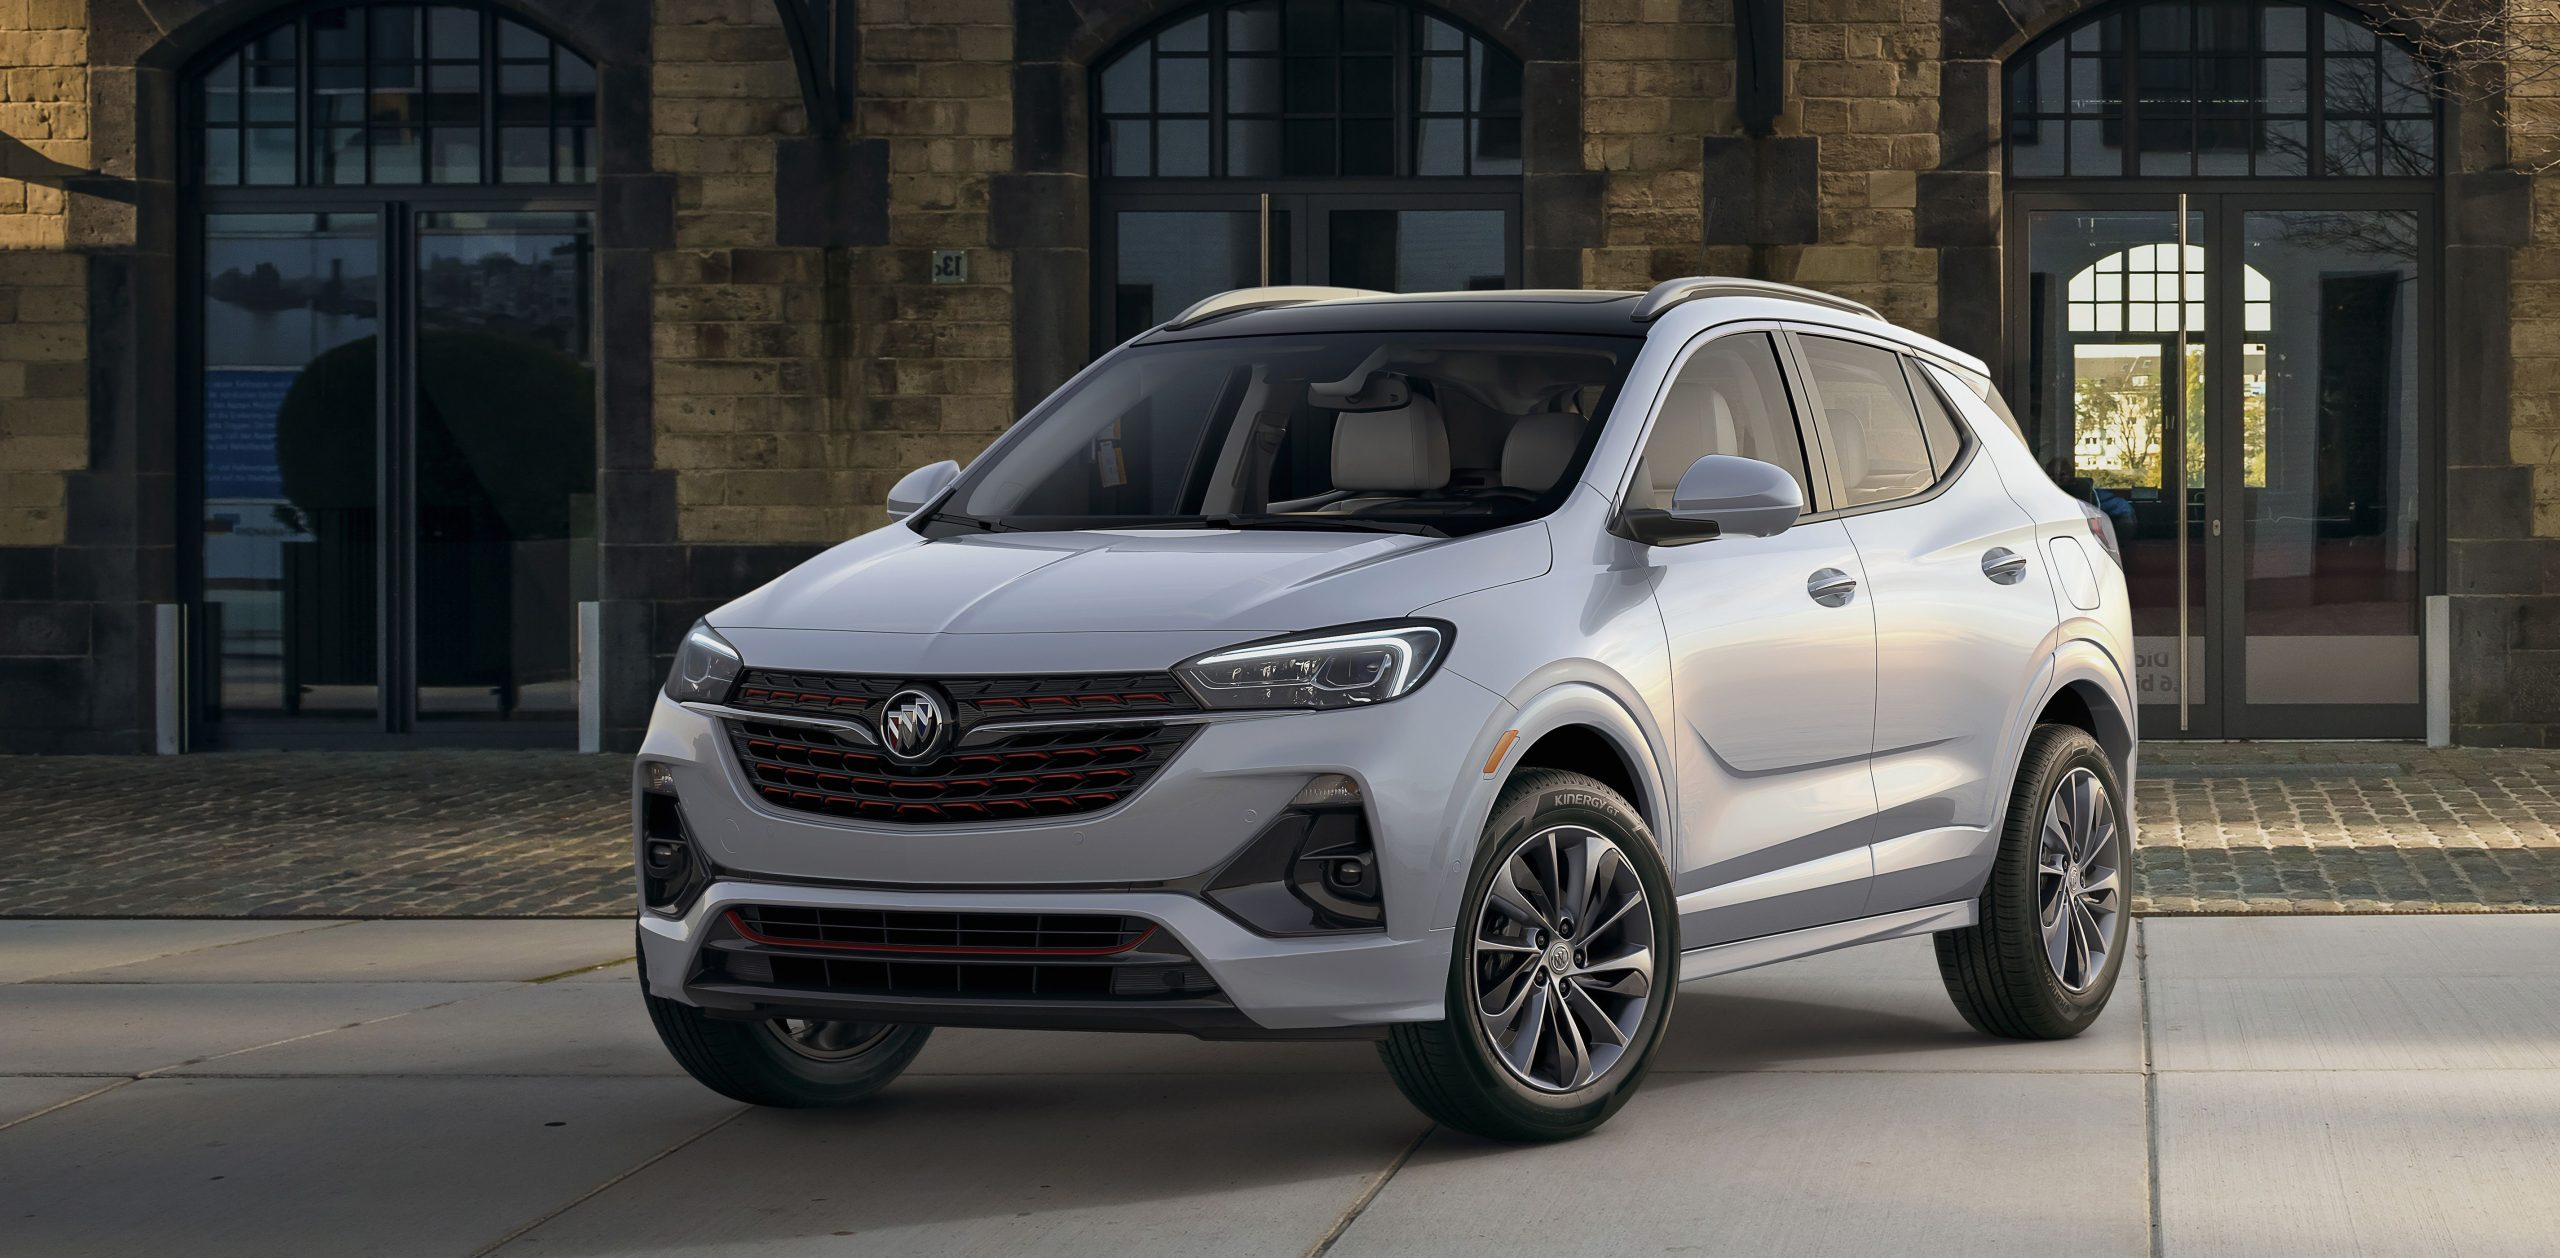 2020 Buick Encore Gx: What We Know So Far New 2021 Buick Encore Gx Safety Rating, Specifications, Tire Size